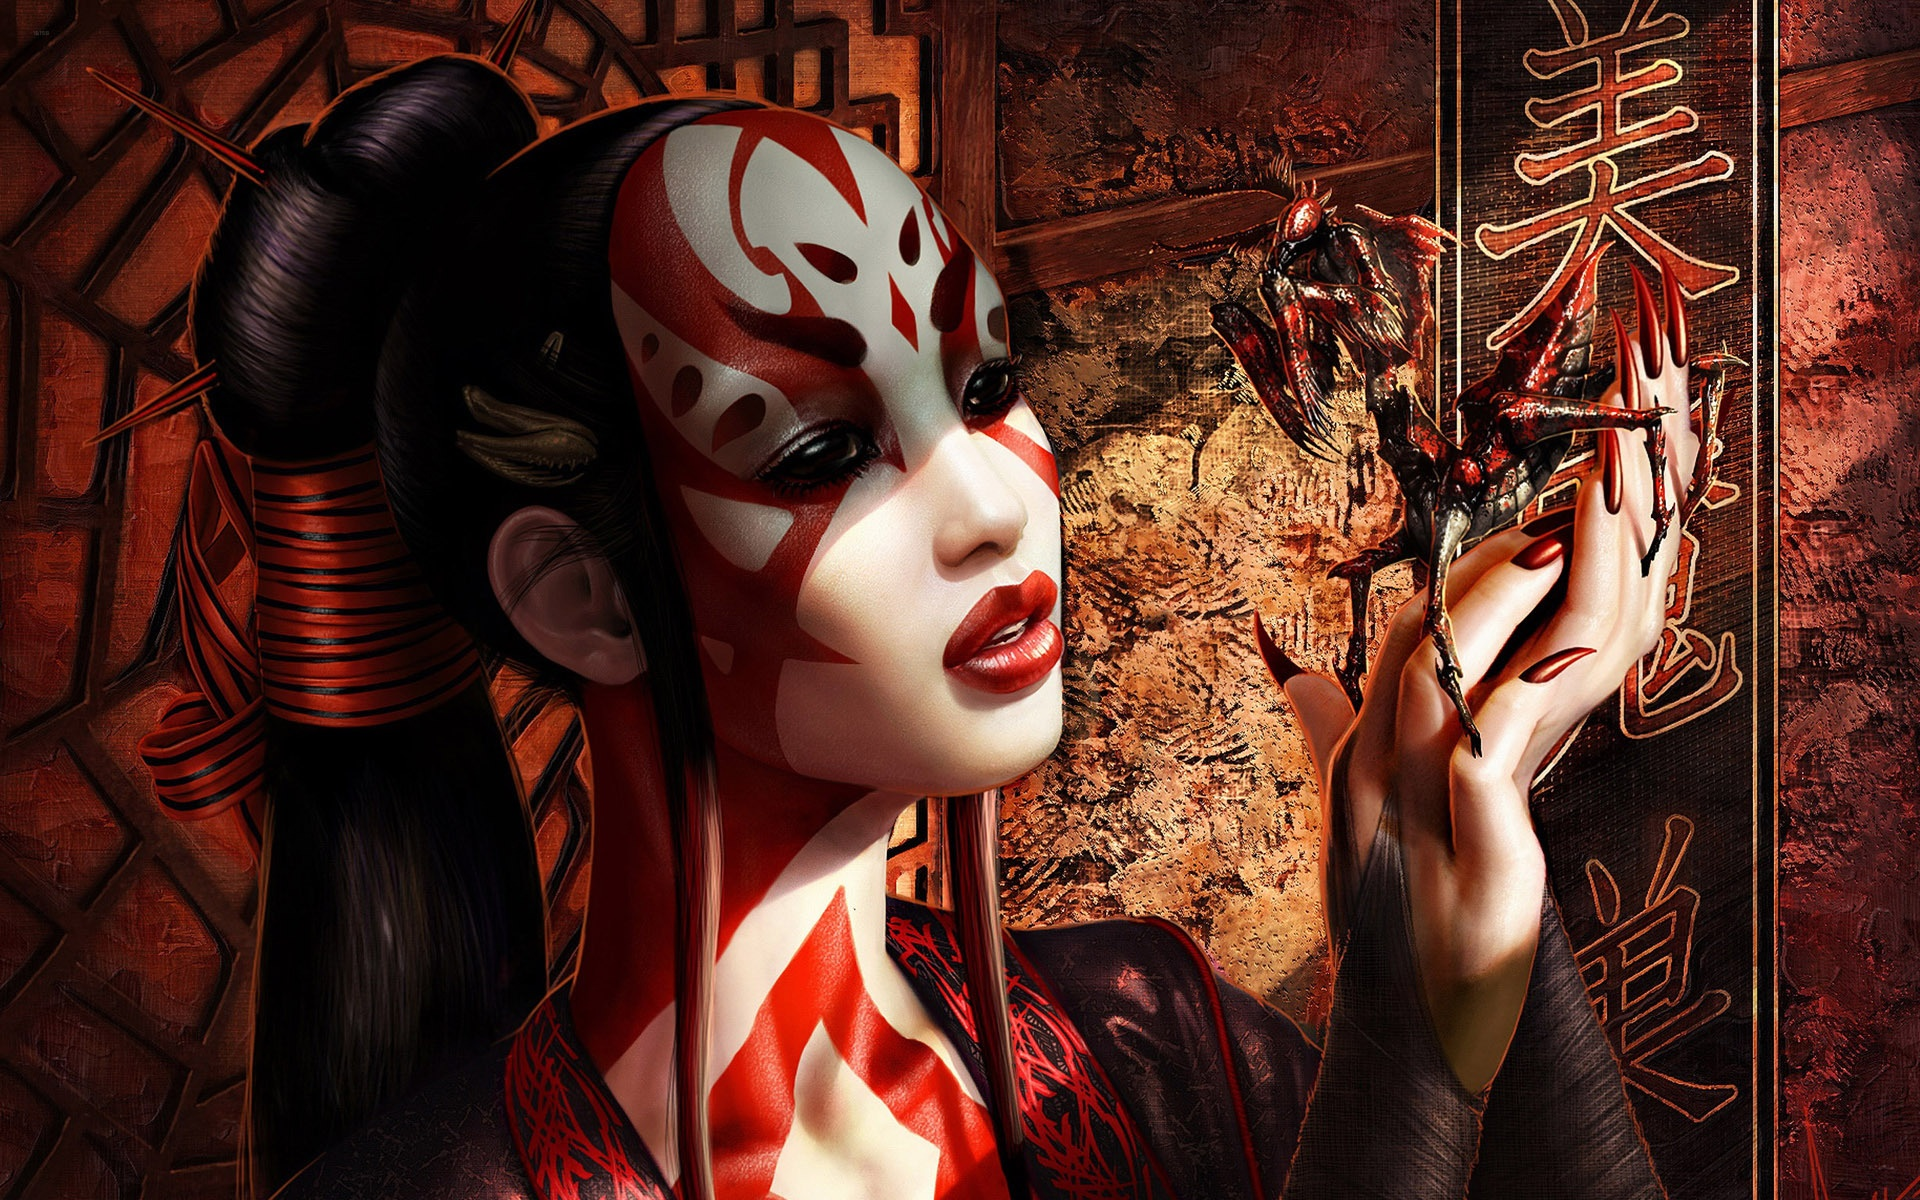 geisha wallpaper tamed red mantis 1920x1200 Wallpapers 3d for desktop 1920x1200